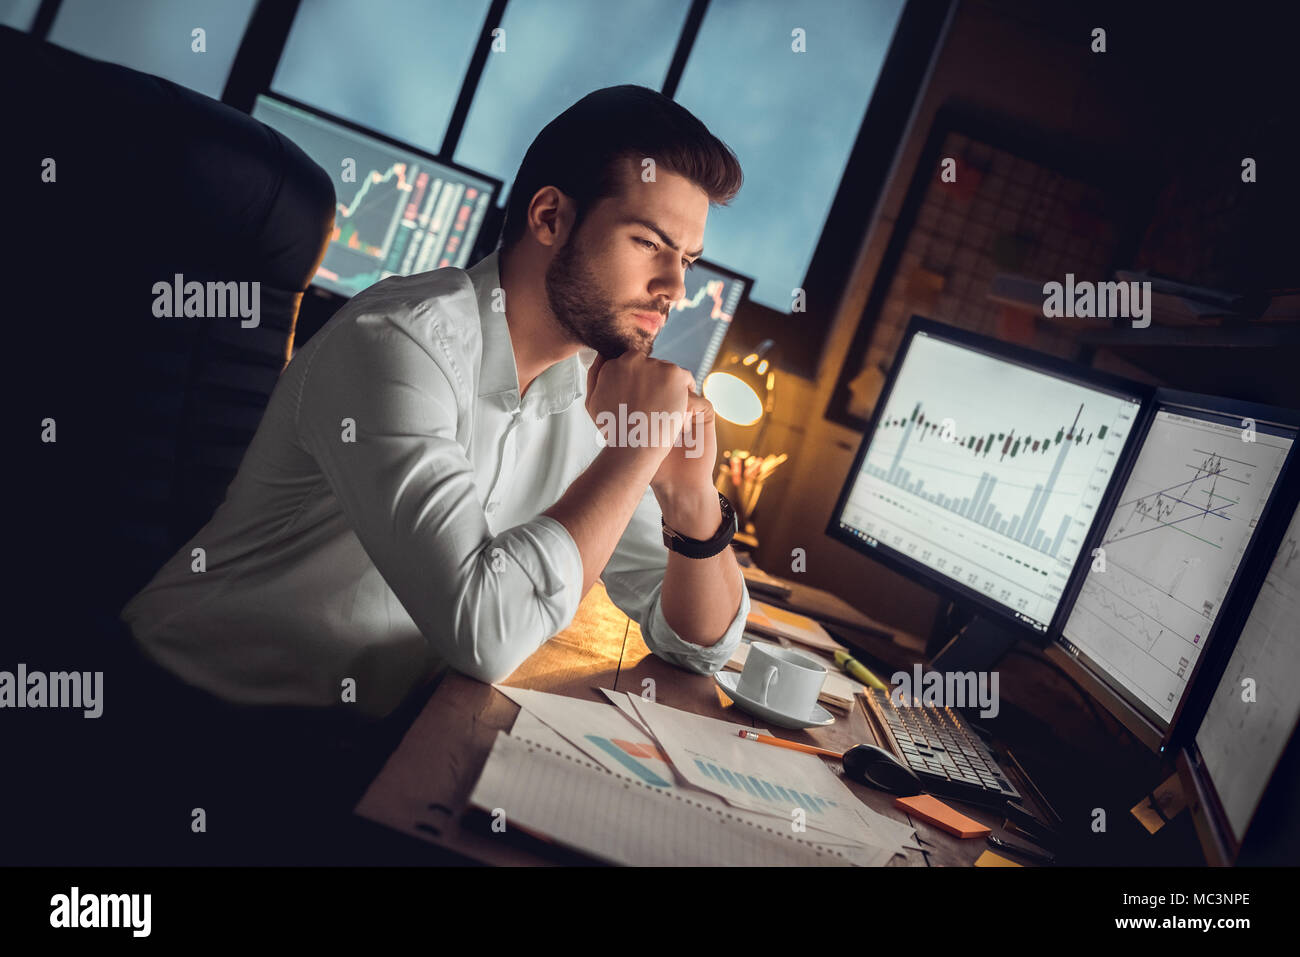 Focused thoughtful trader or serious investor working at night overtime analyzing stock trading graphs looking at computer monitors controlling market - Stock Image